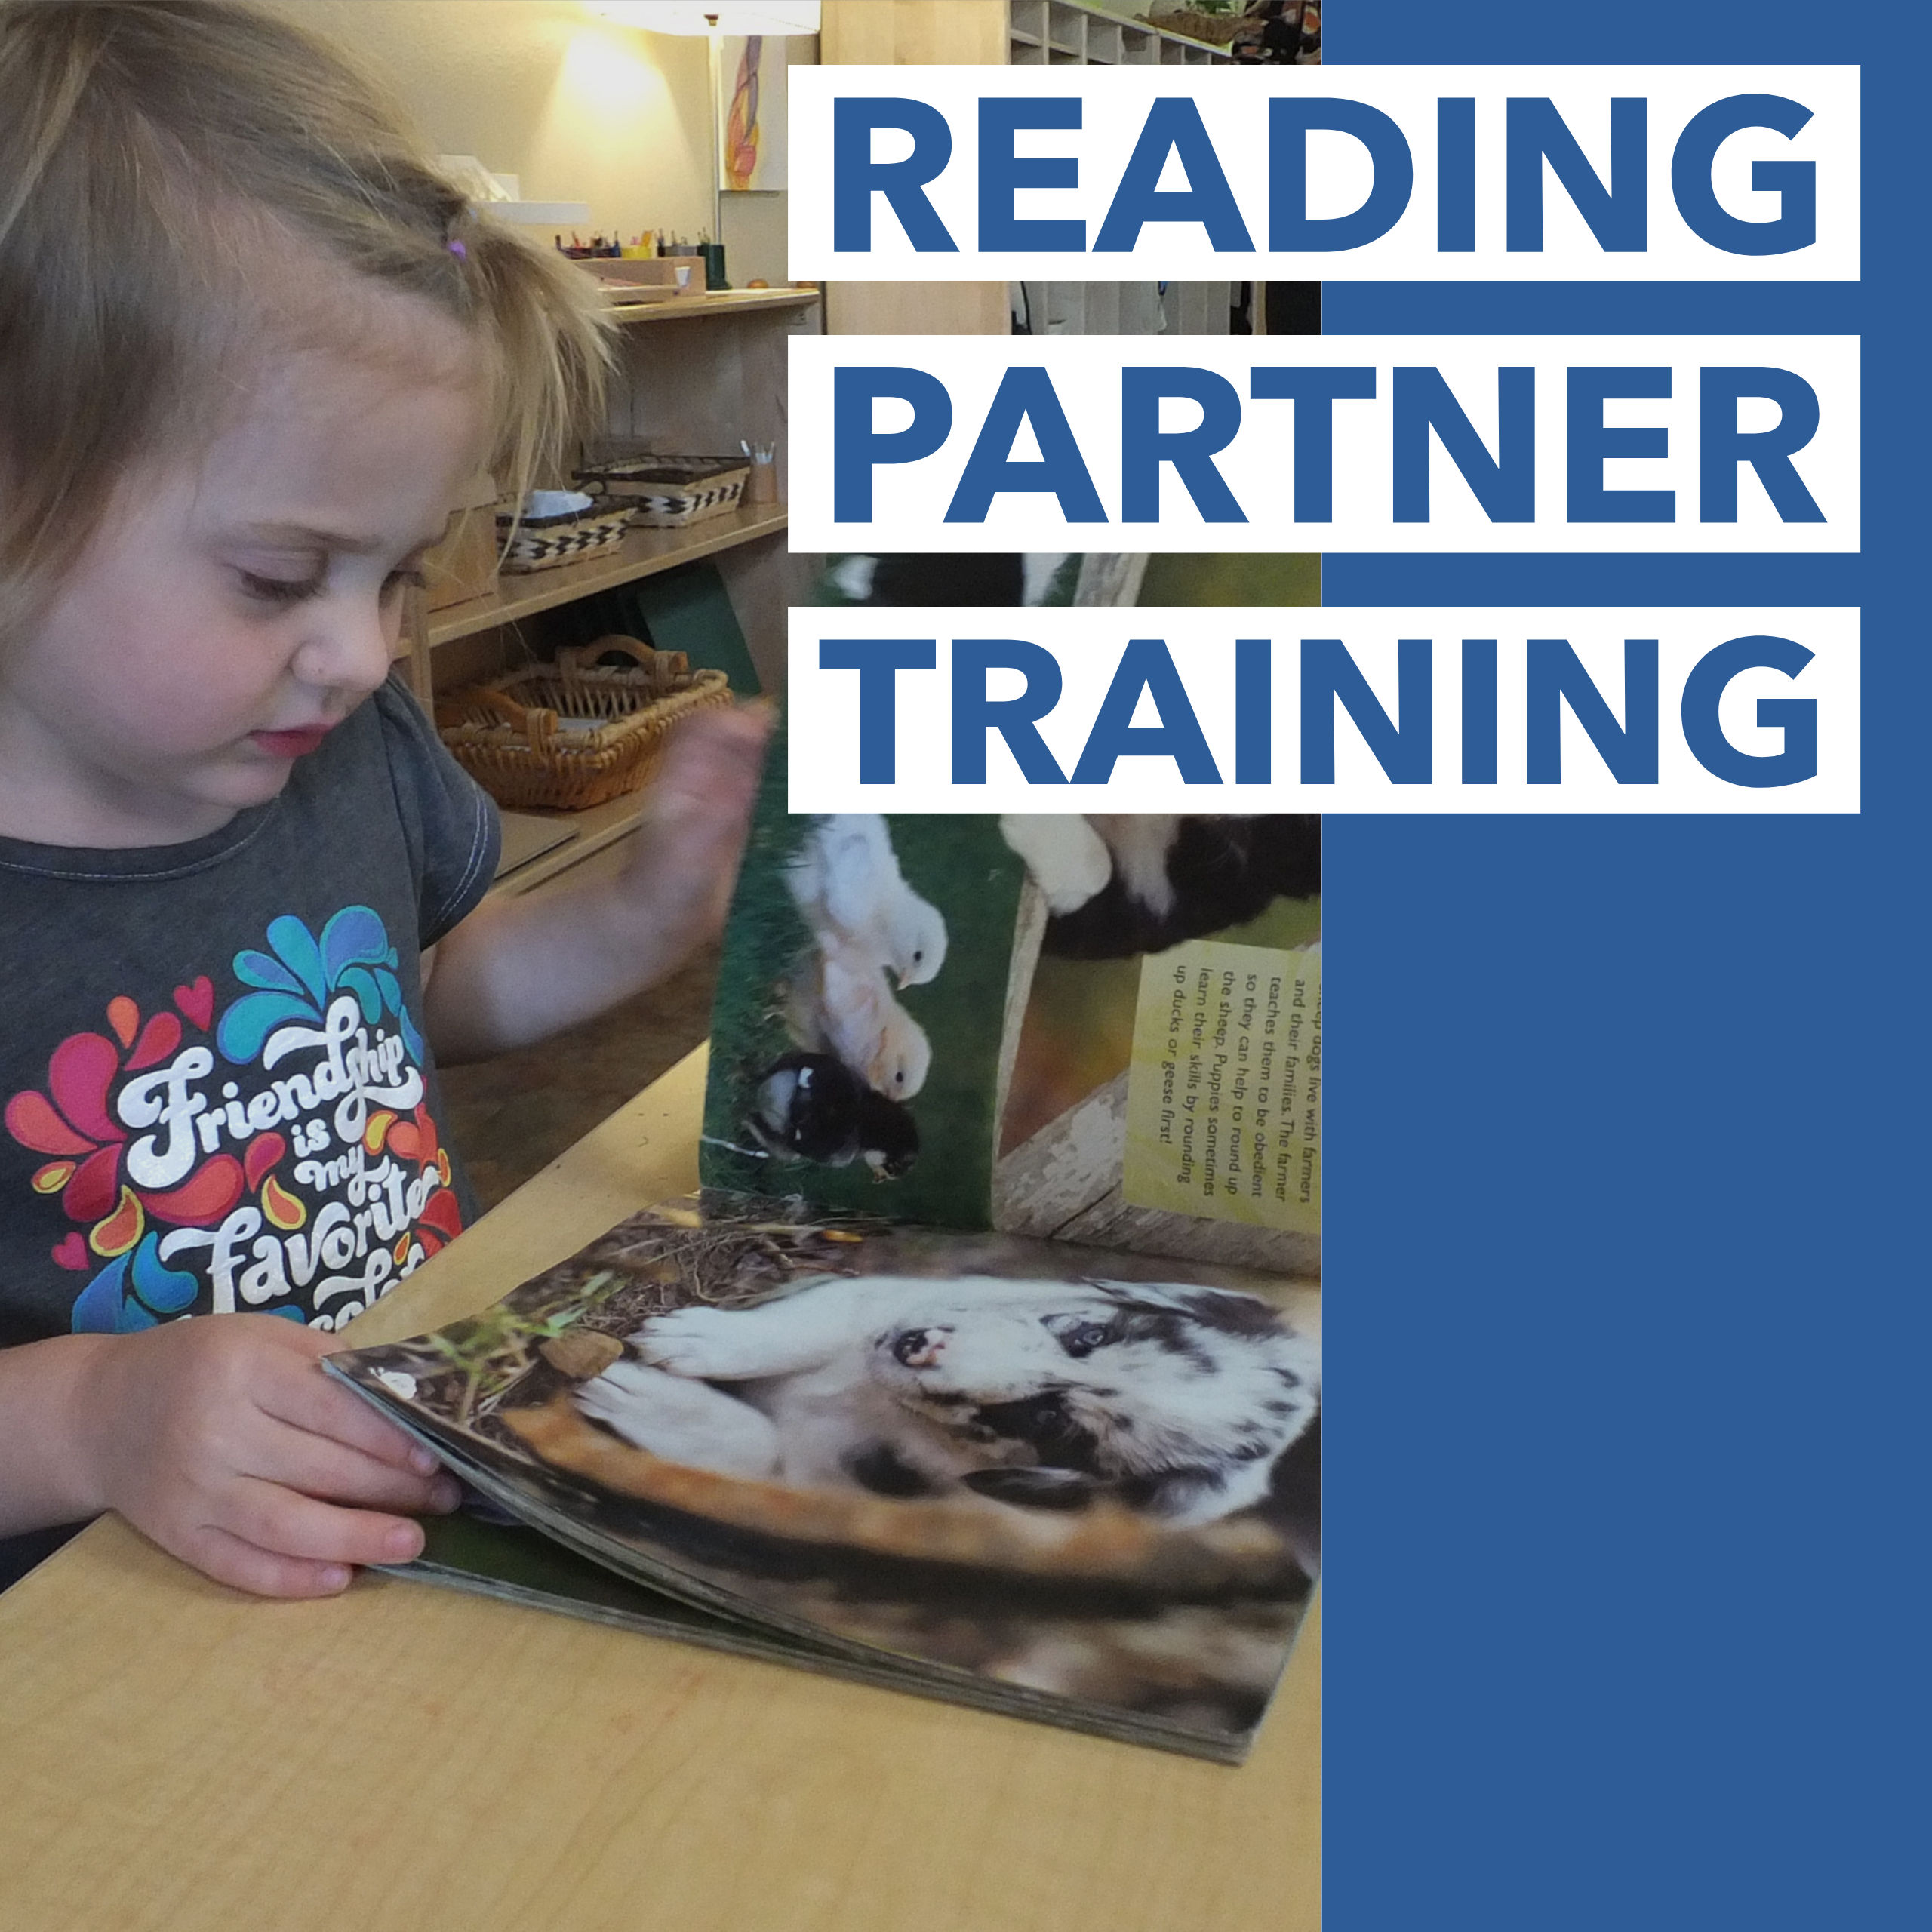 Reading Partner Training